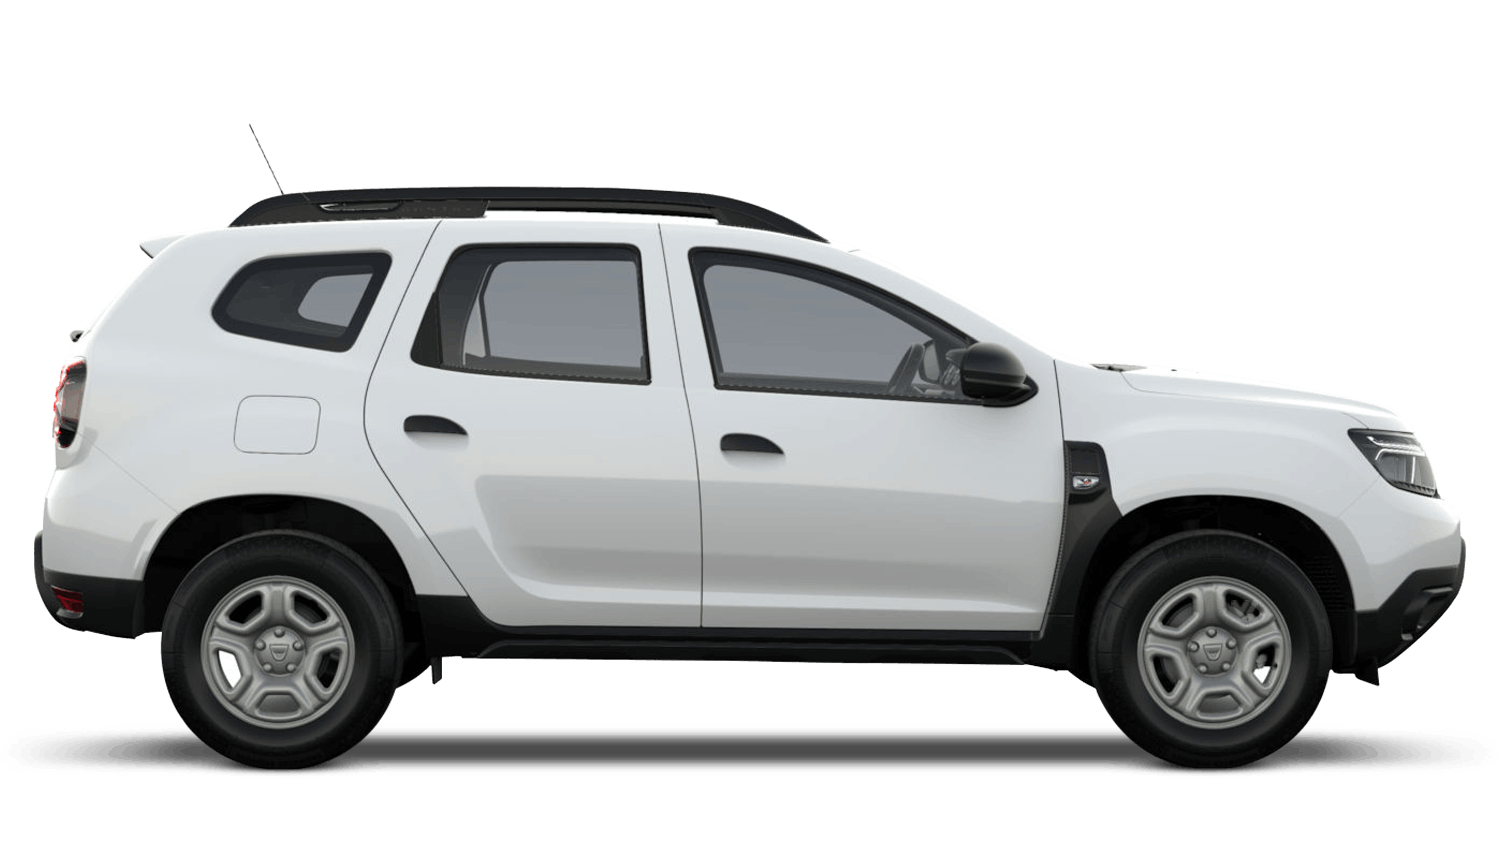 Glacier White New Dacia Duster